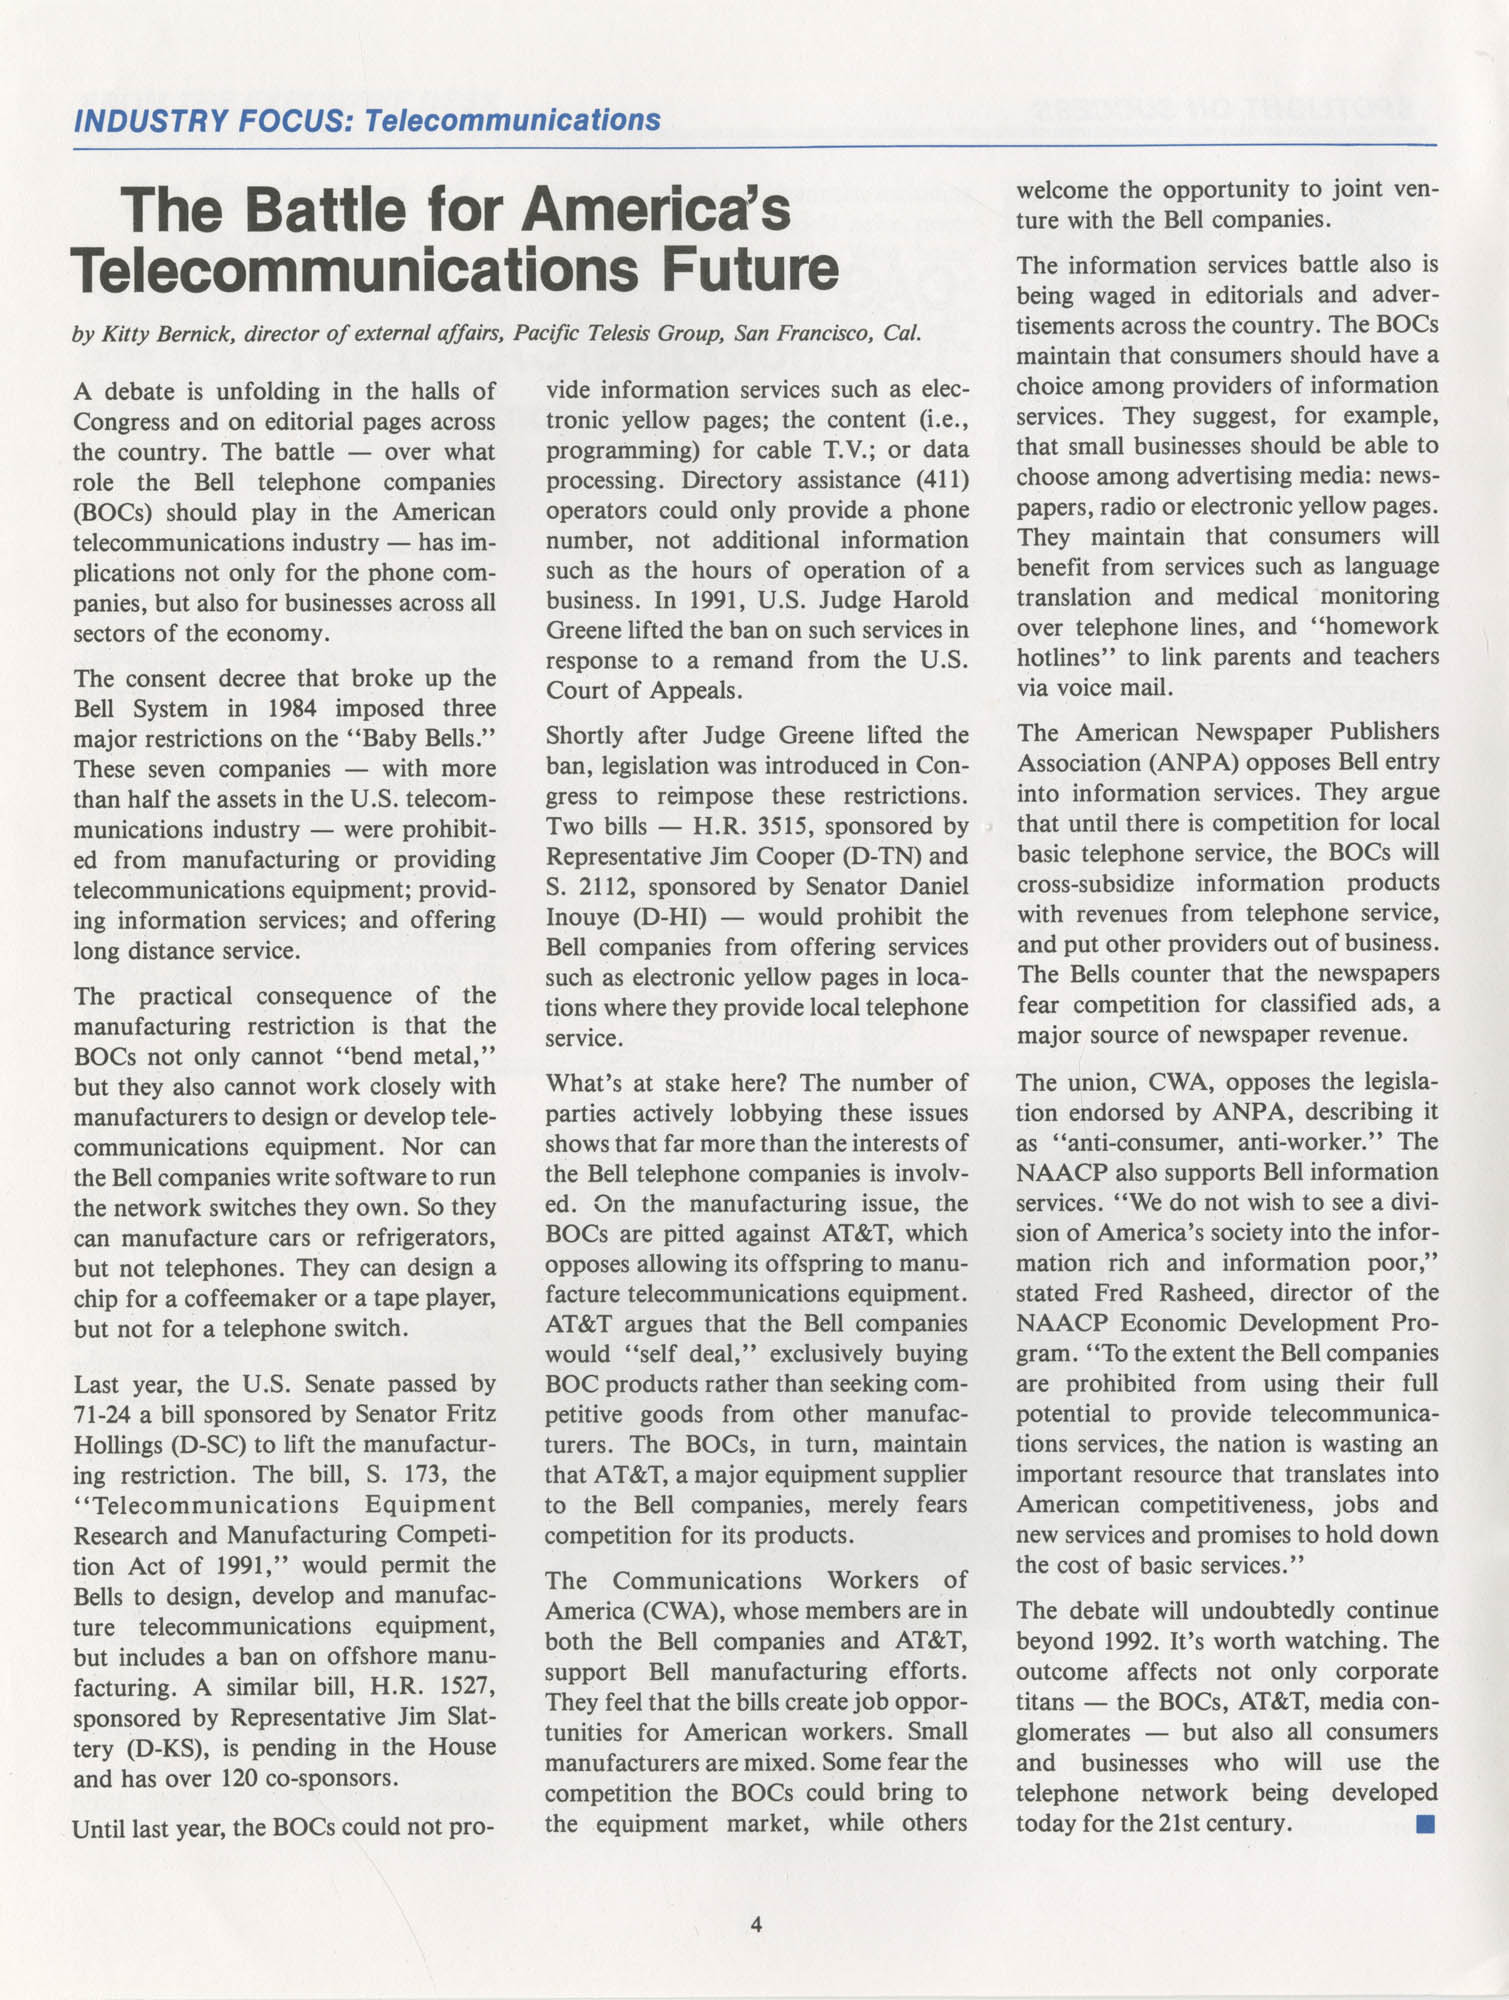 NAACP Commerce and Trade Council Economic Report, Vol. 1, No. 2, Spring 1992, Page 4